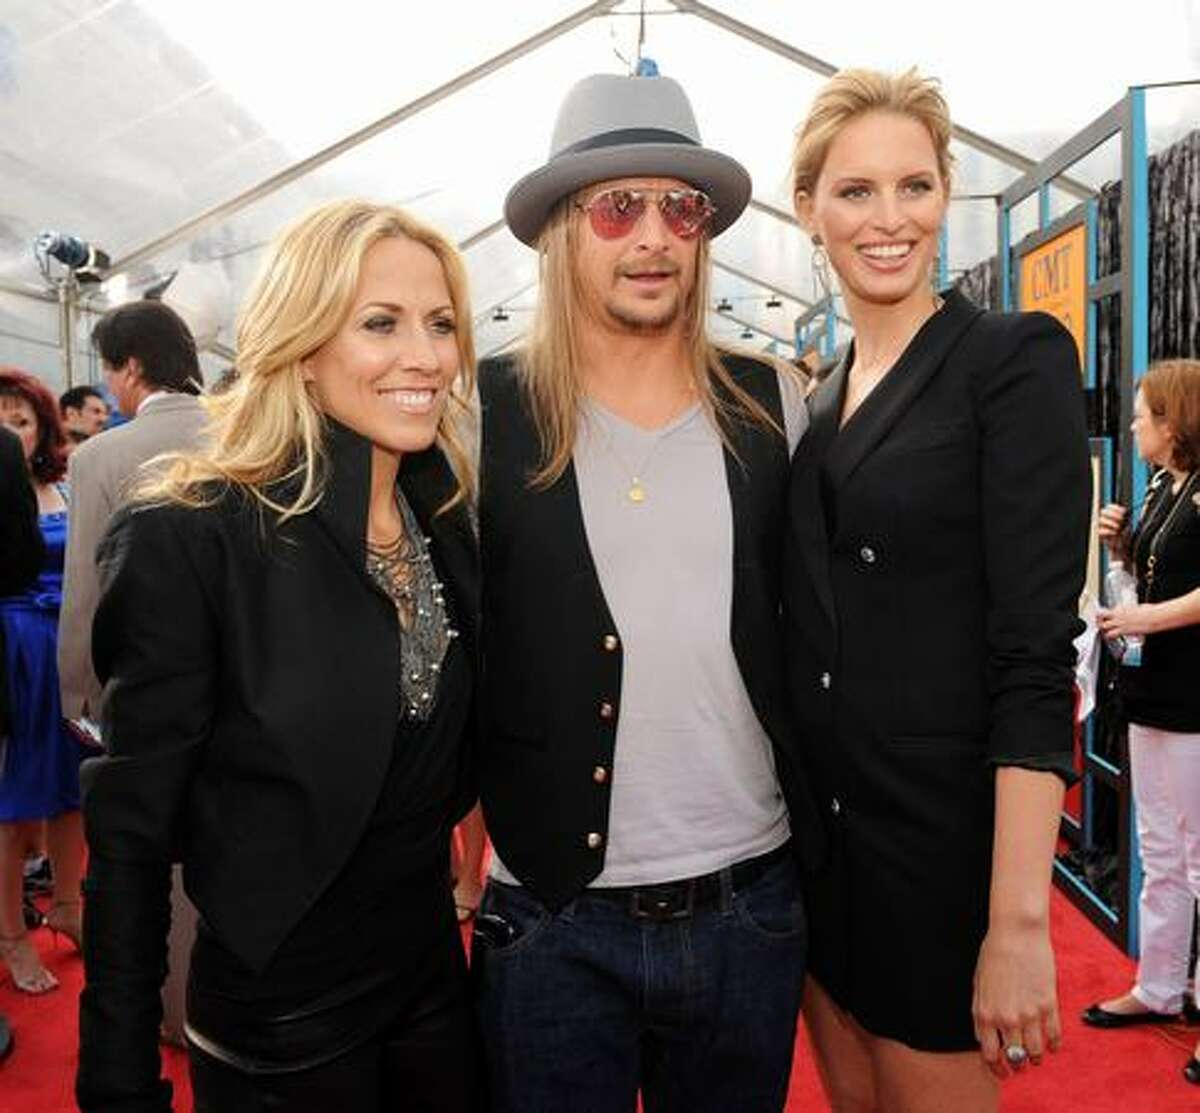 Musicians Sheryl Crow and Kid Rock and model Karolina Kurkova.